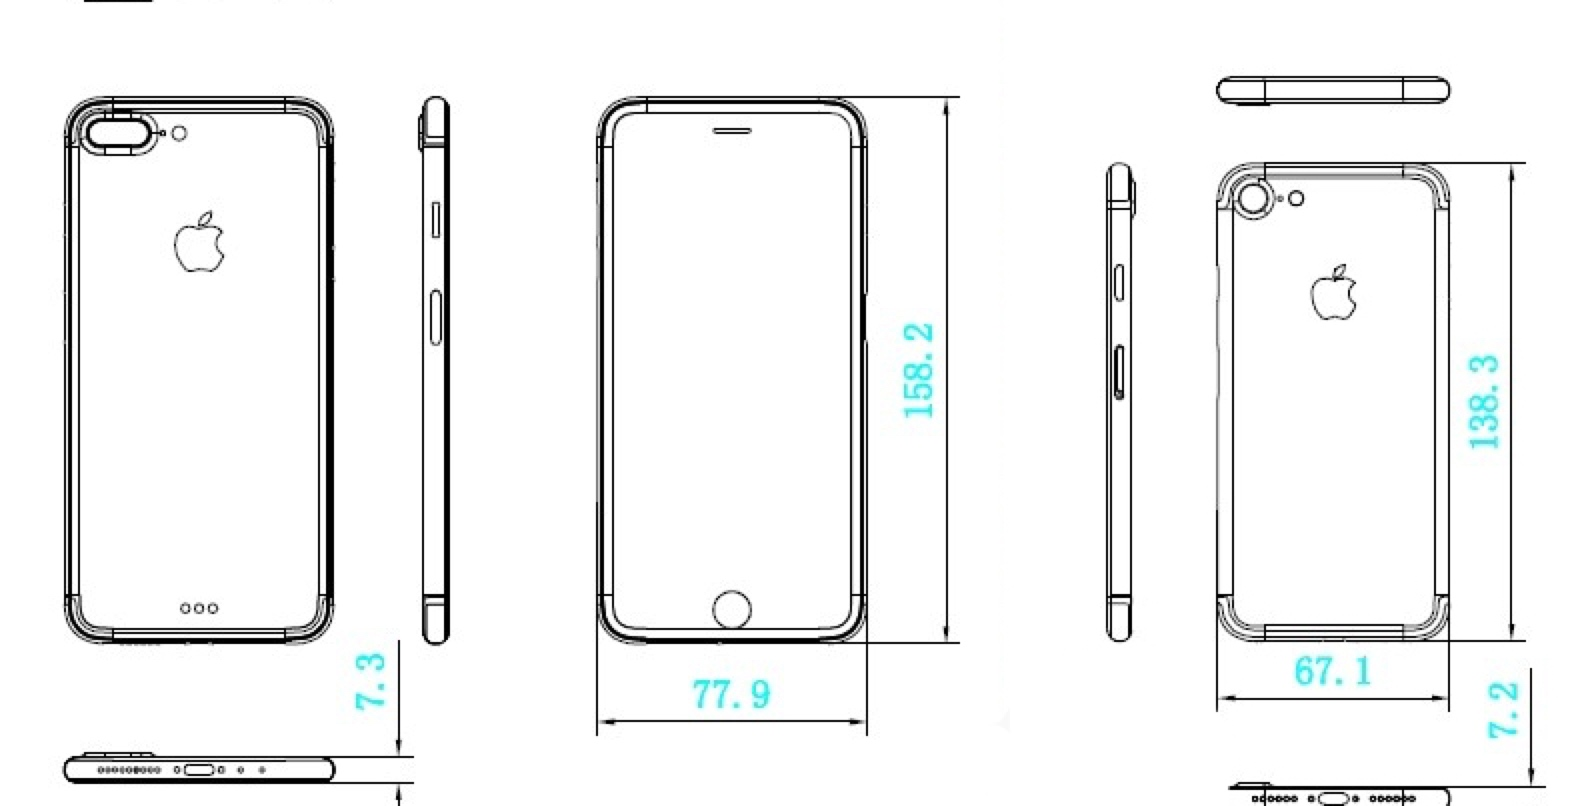 new iphone 7 schematics suggest similar dimensions unlikely front changes on iphone 7 plus 9to5mac [ 1574 x 806 Pixel ]